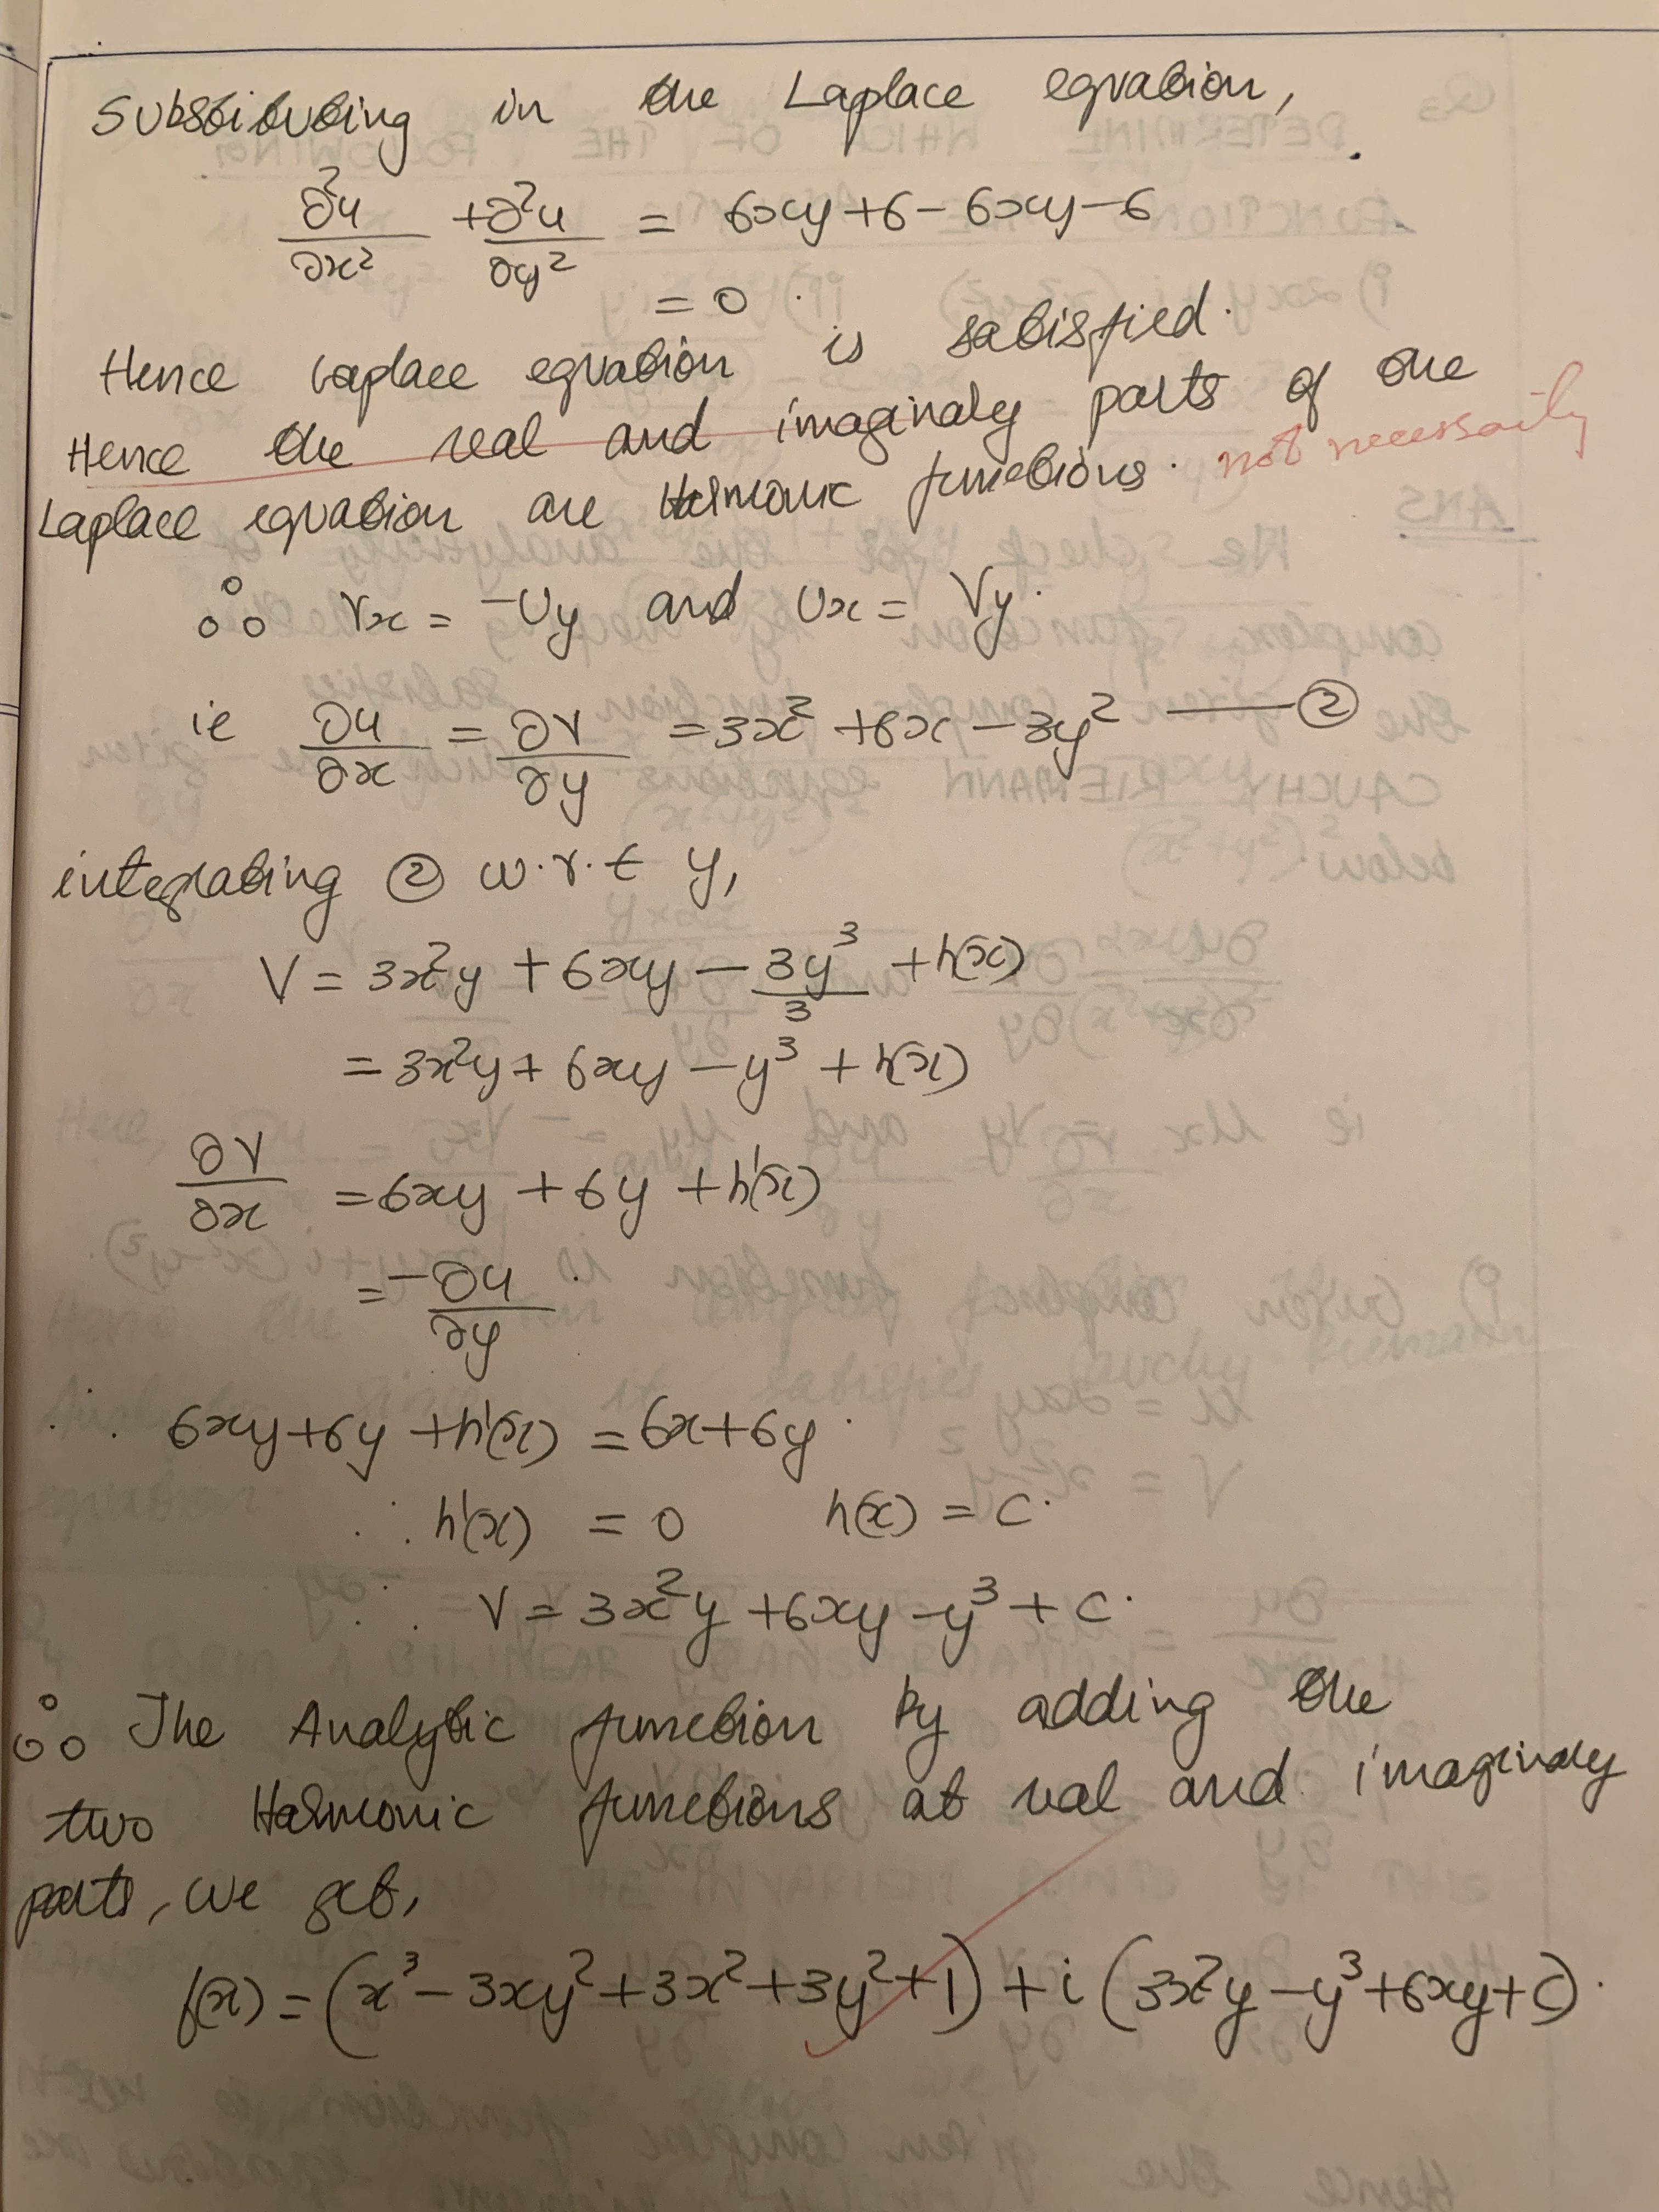 Checking a function for Laplace Equation